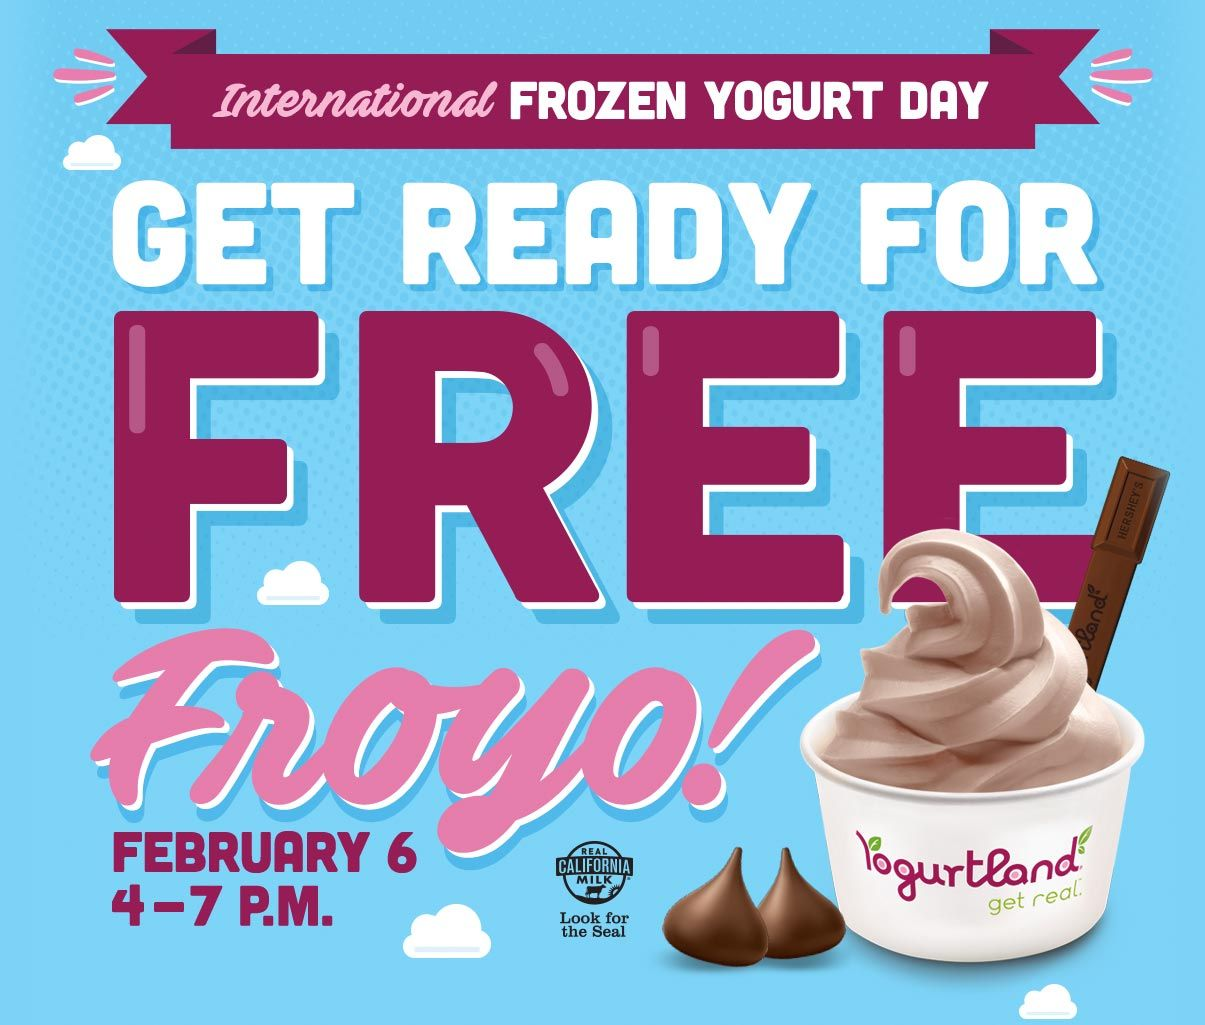 FREE Frozen Yogurt from Yogurtland TODAY ONLY from 4pm to 7pm!